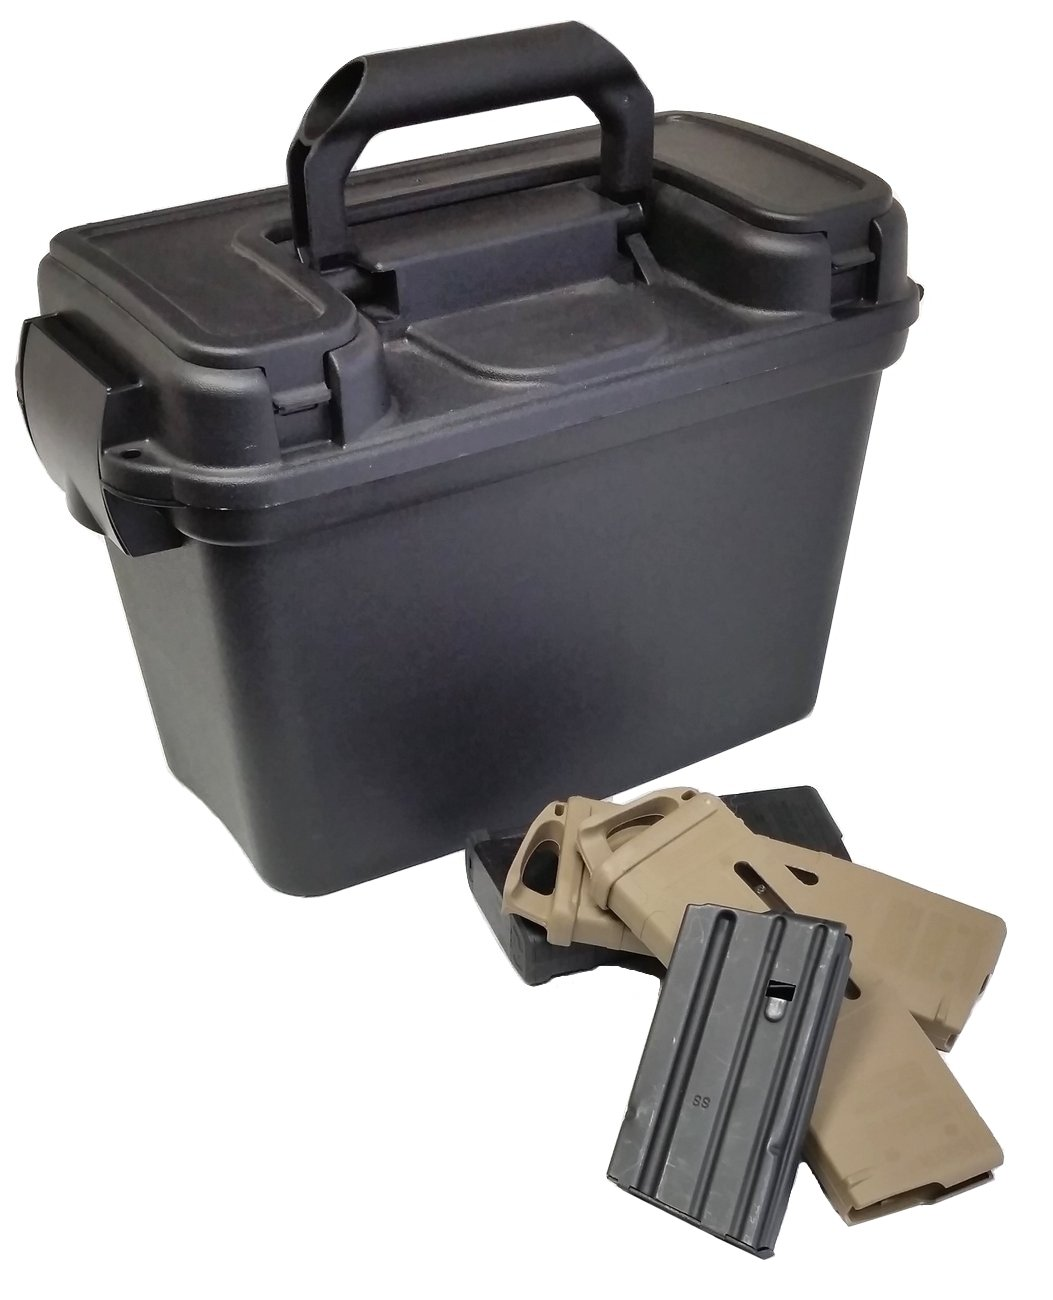 x20 AR15 Magazine ( 223/5 56) Water-Resistant Box with Spare Accessory  Compartment - Case Club Cases